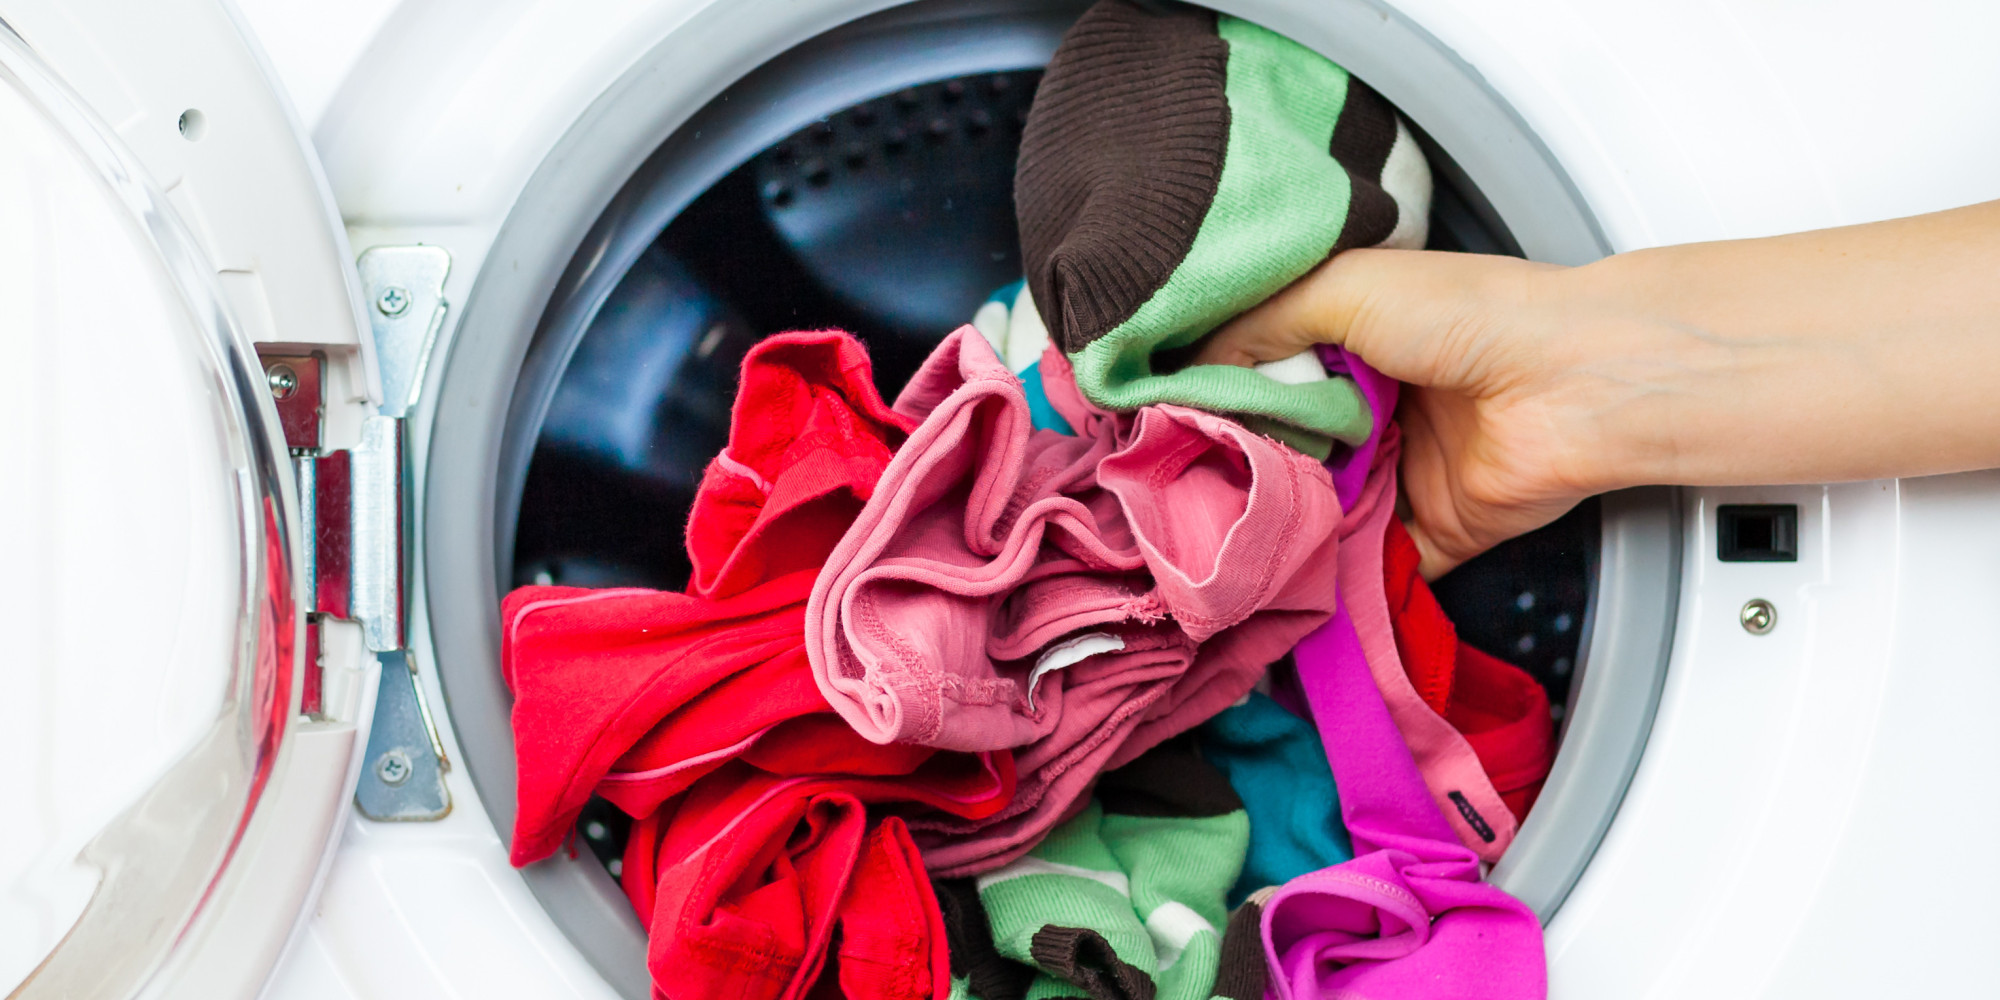 How Important Is It to Wash New Clothes Before Wearing Them?